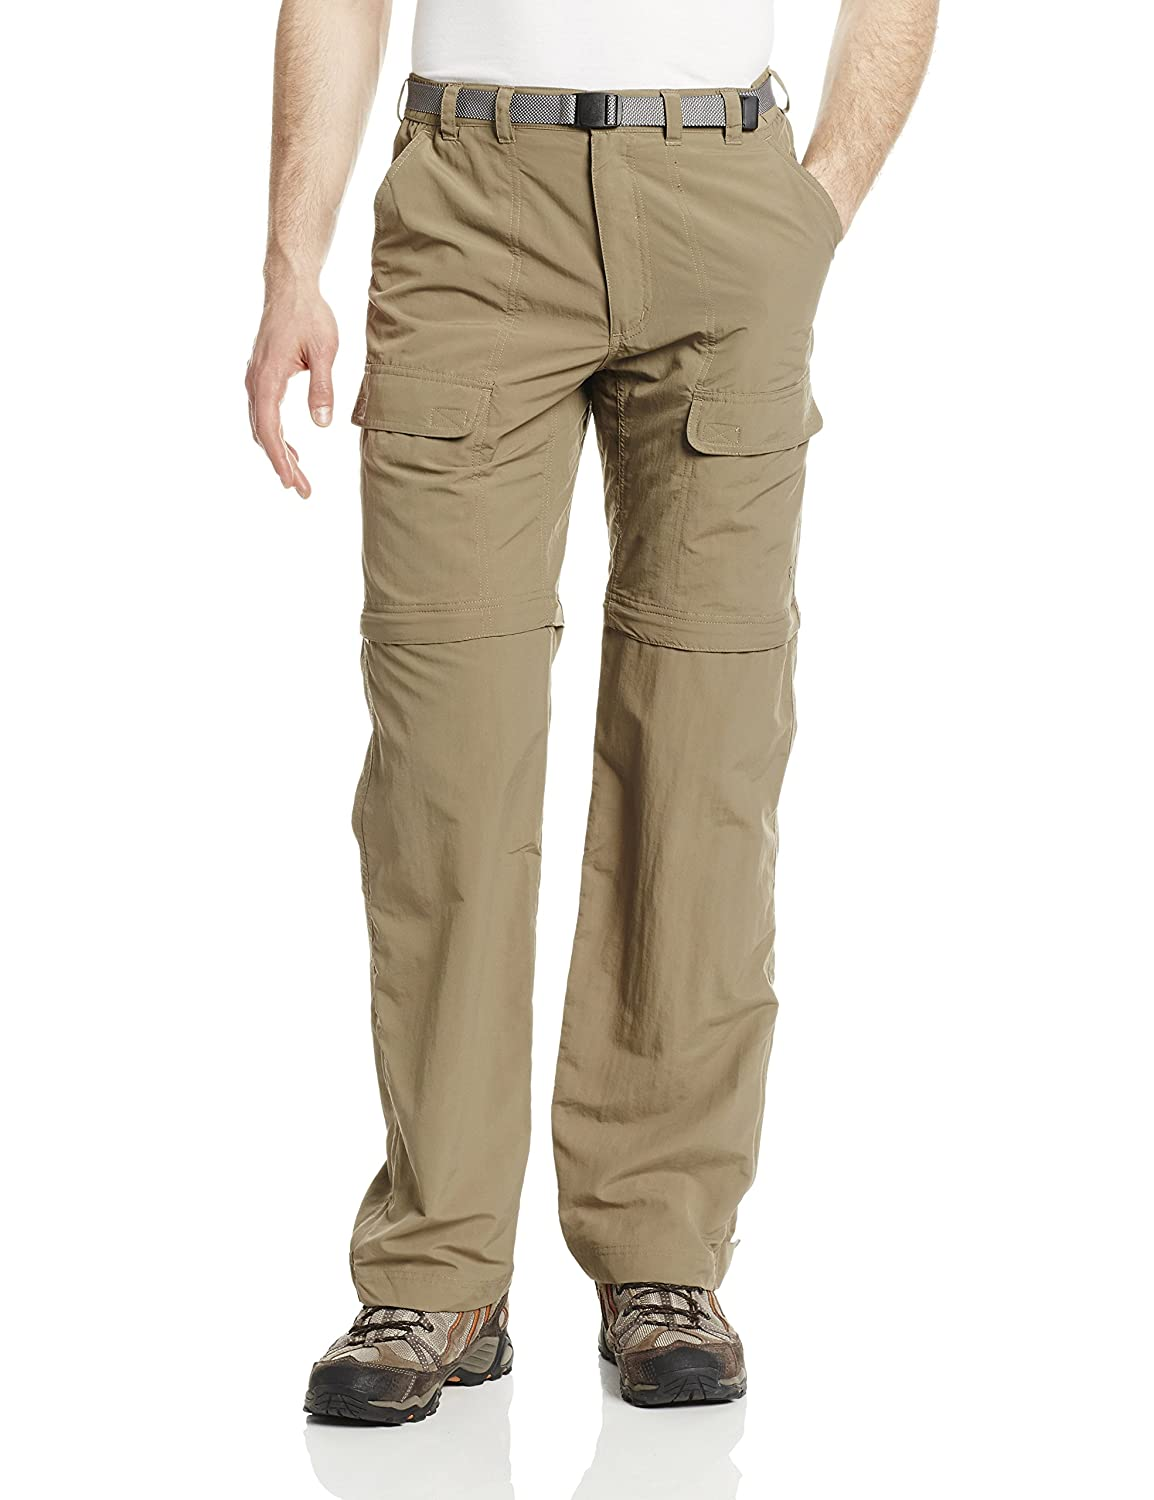 Medium Bark White Sierra Mens Trail 34-Inch Inseam Convertible Pant